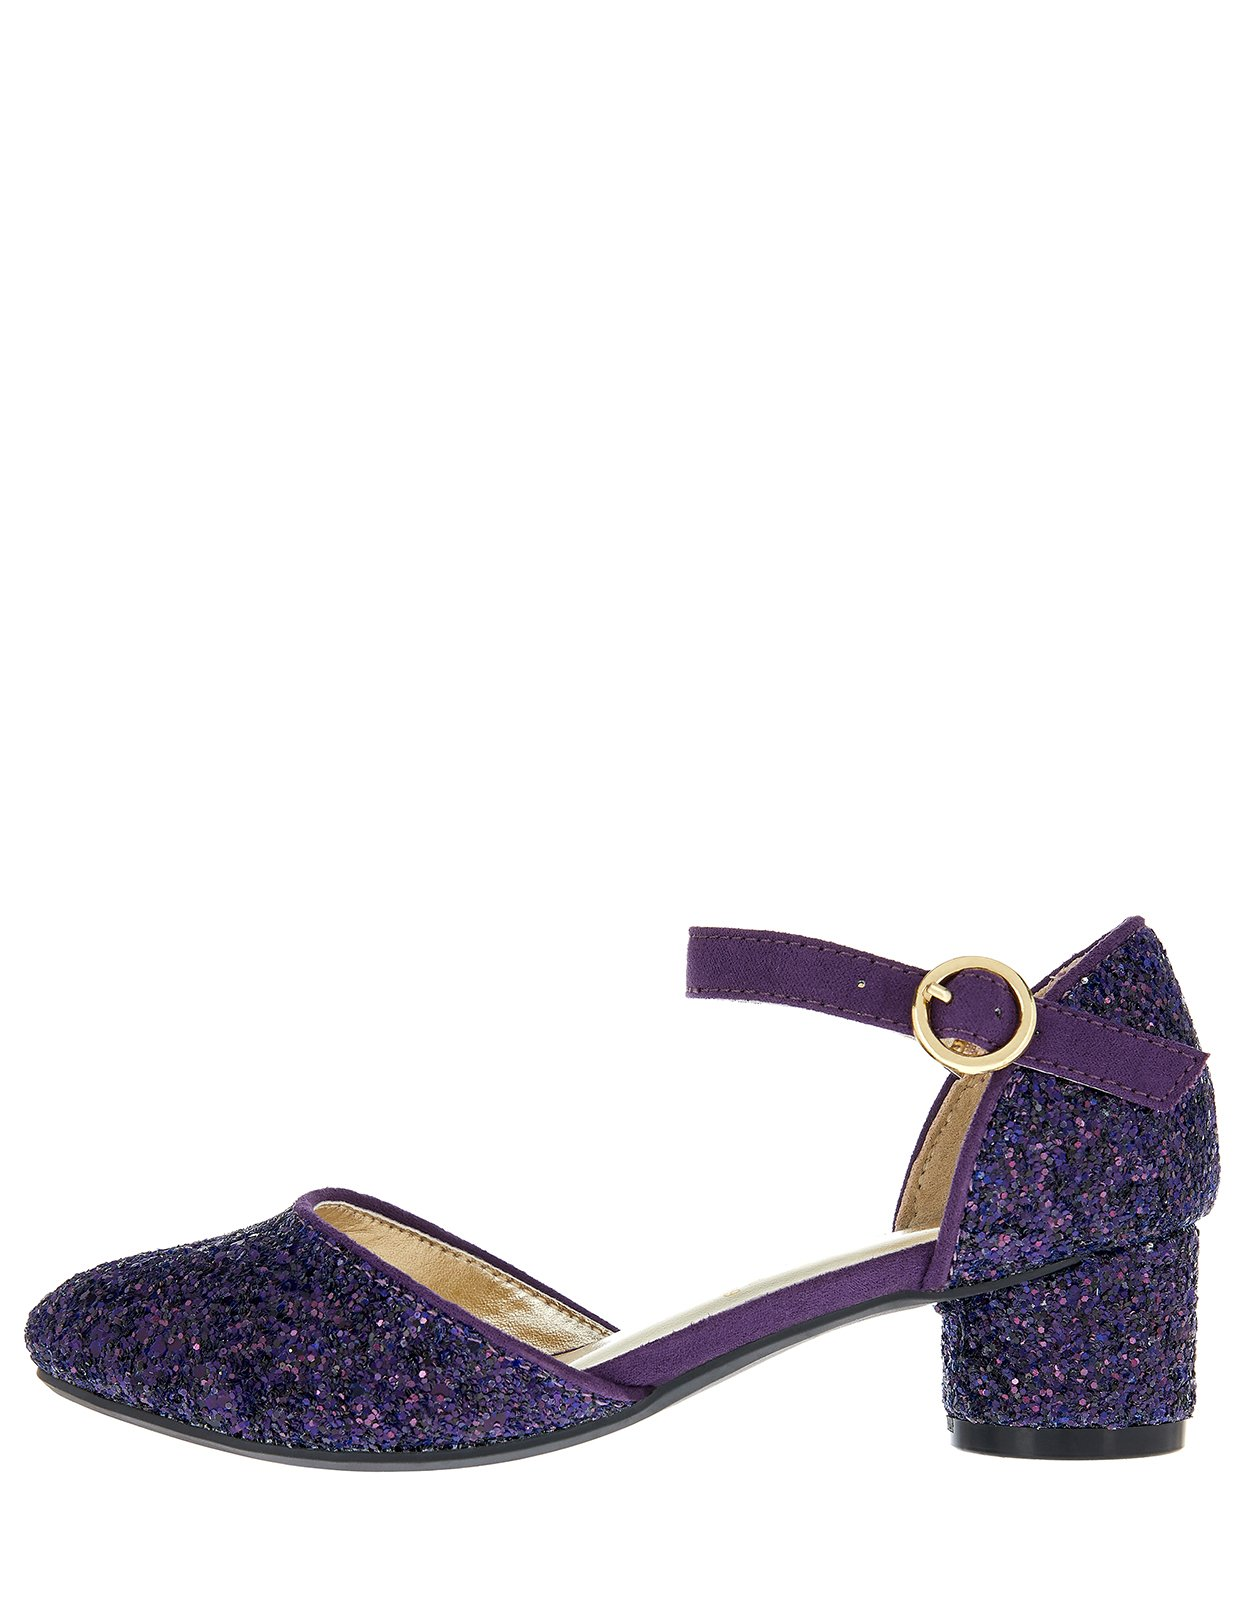 Accessorize Gloria Glitter Two Part Shoes - Girls - US 12 Shoe